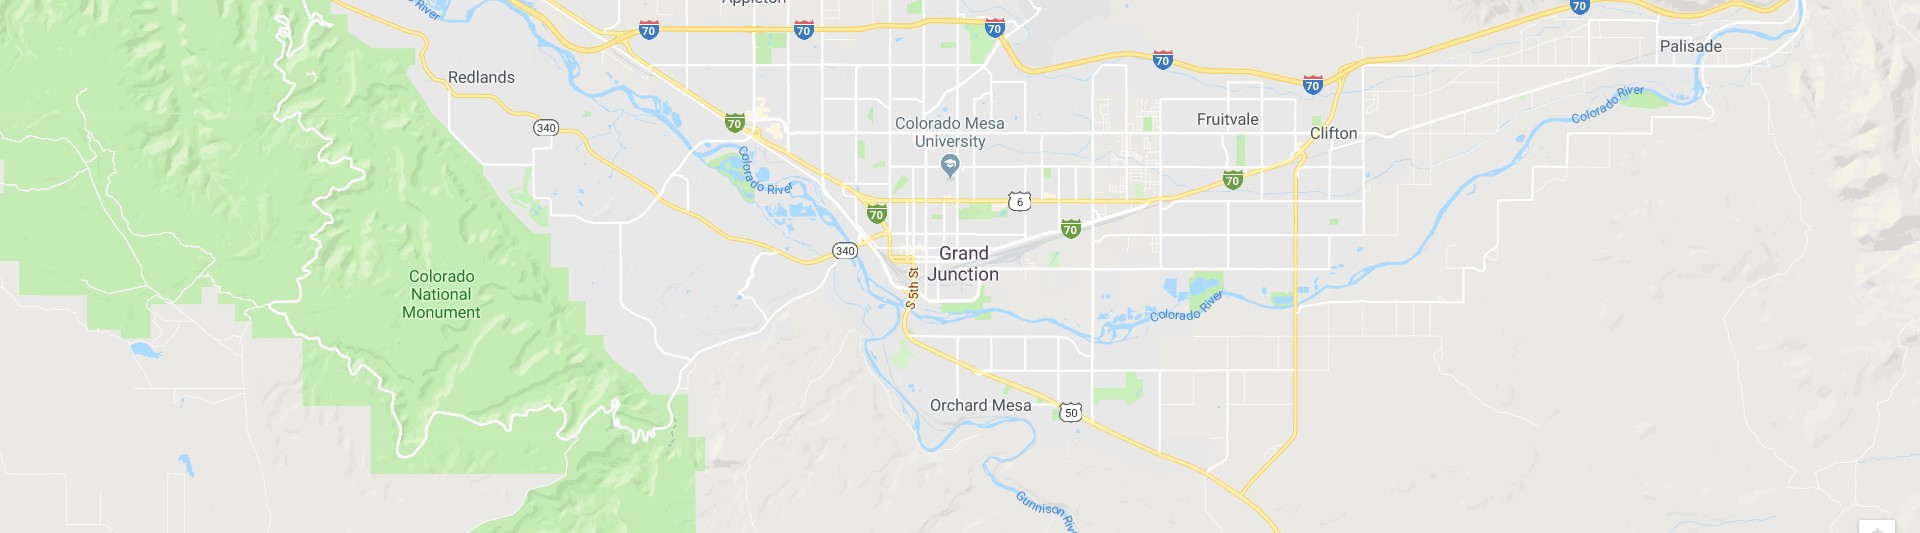 biohazardous waste removal in western slope area colorado